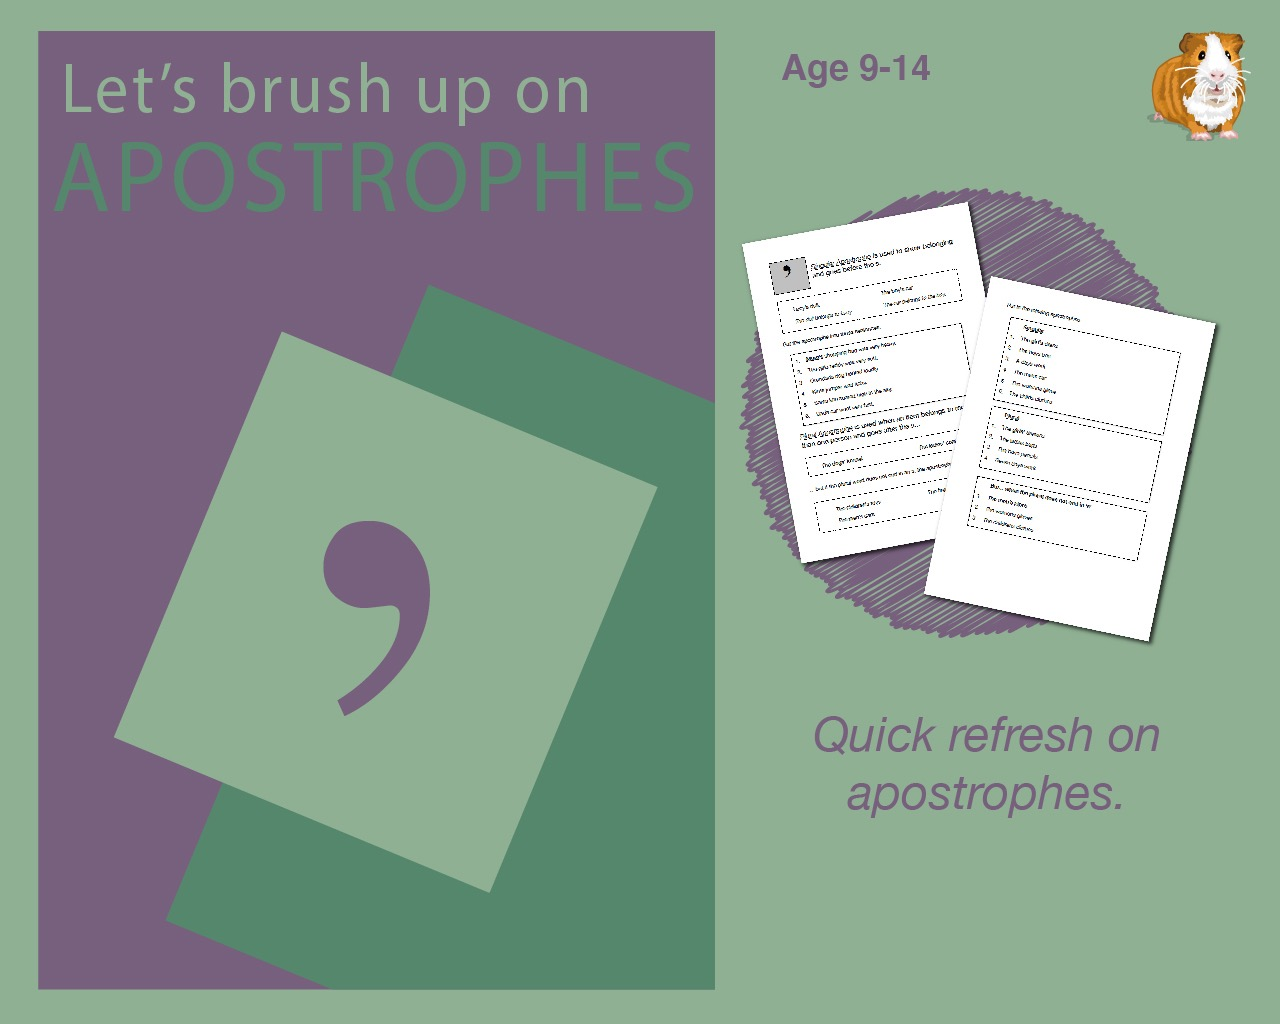 Using Apostrophes (9-14 years)